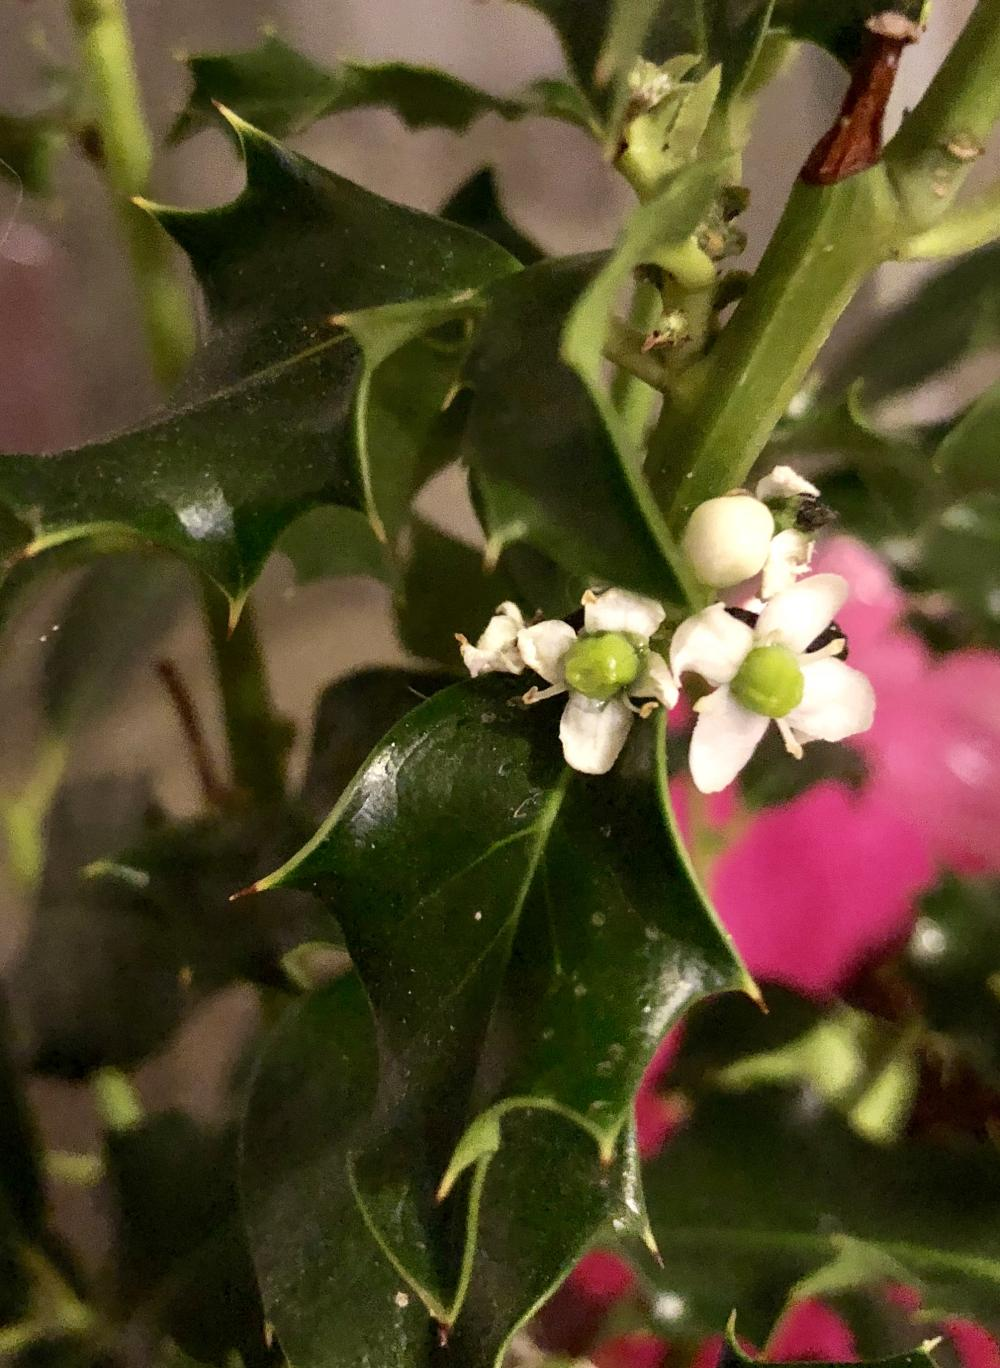 Holly plant bloomed this weekend